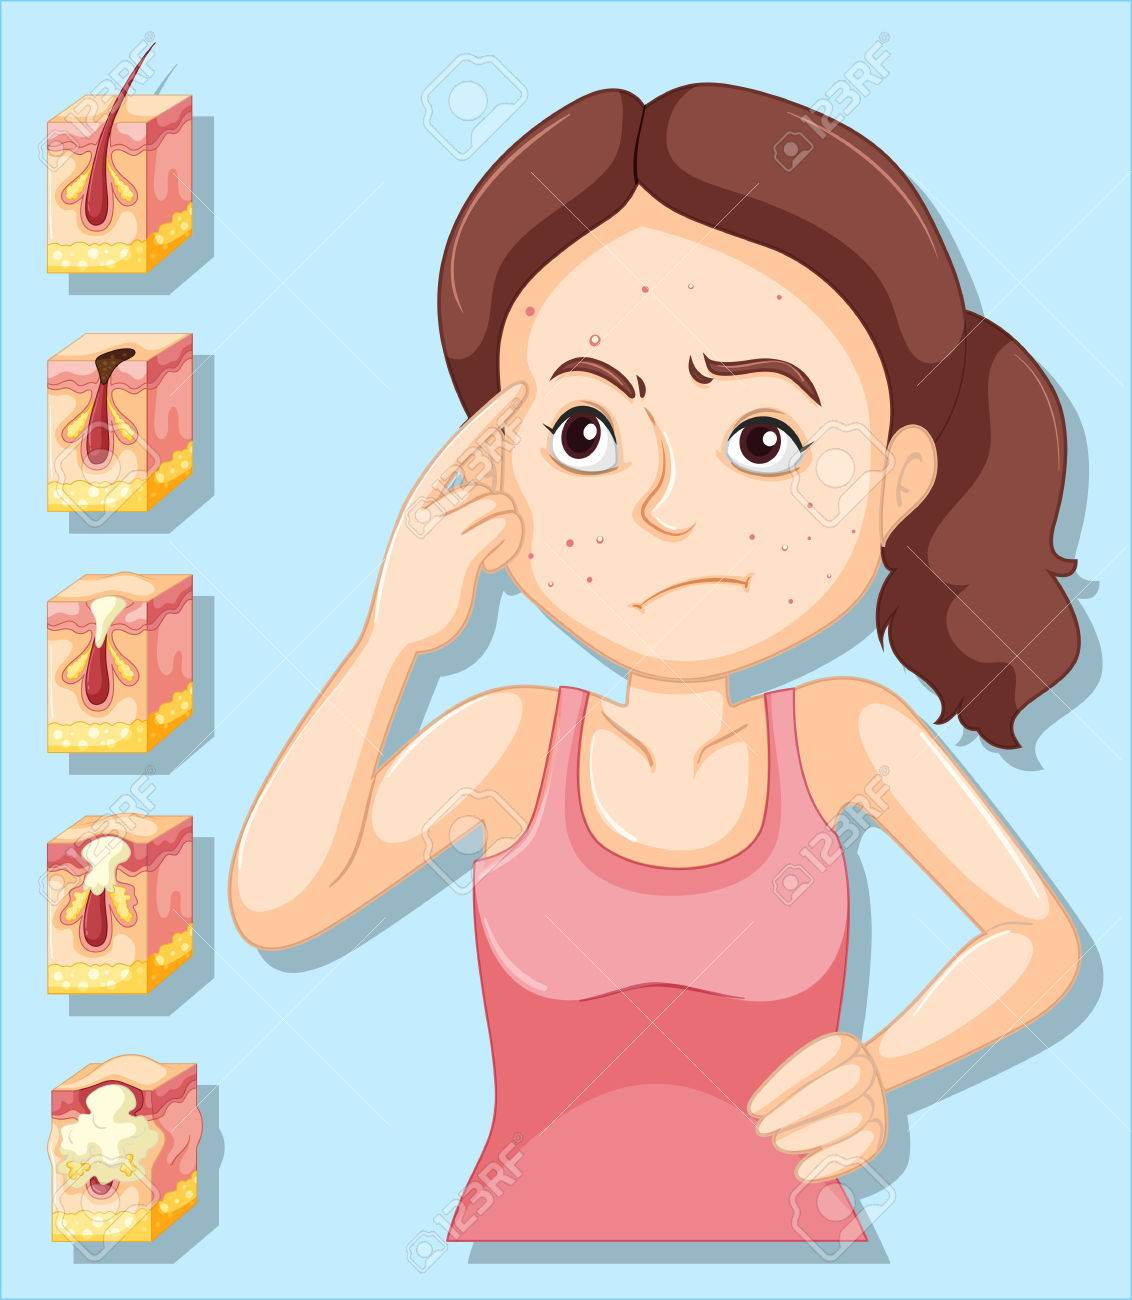 Woman and pimple problems illustration - 58834182